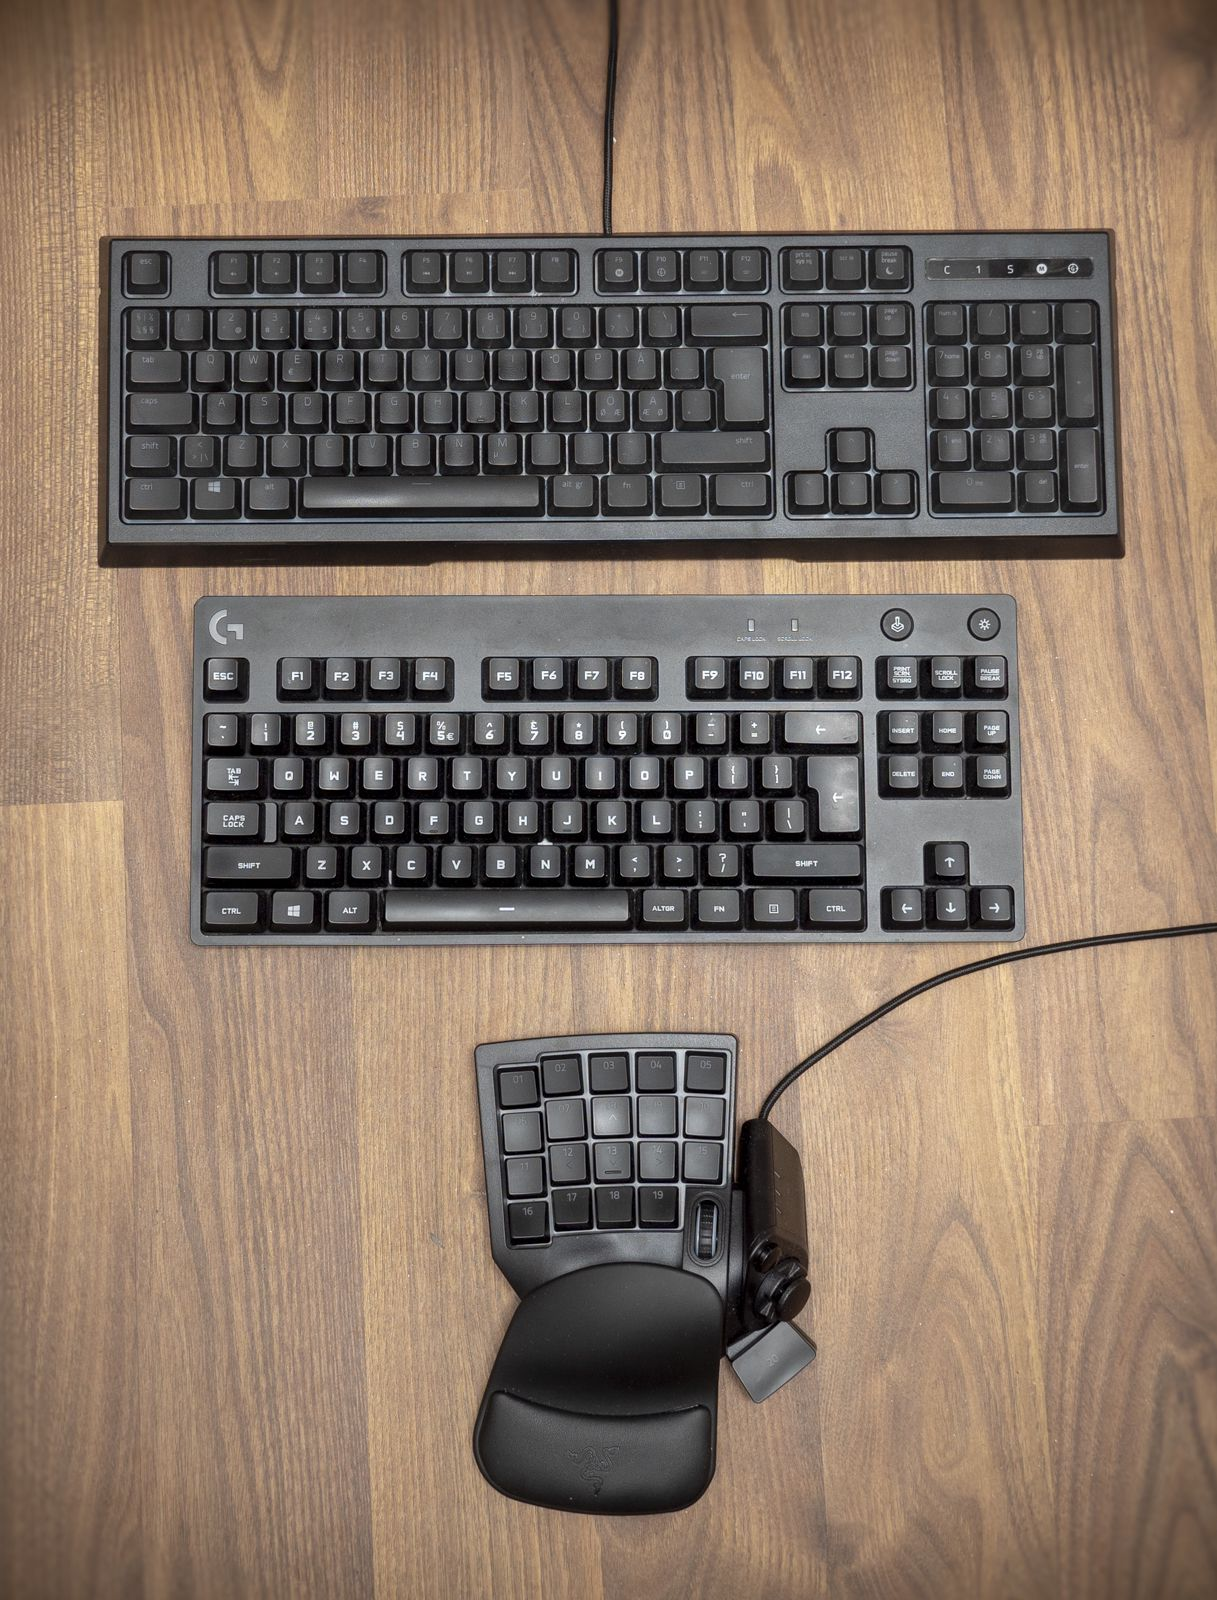 SAMLETEST  Det beste tastaturet for gaming - Tek.no 2d886277dade8